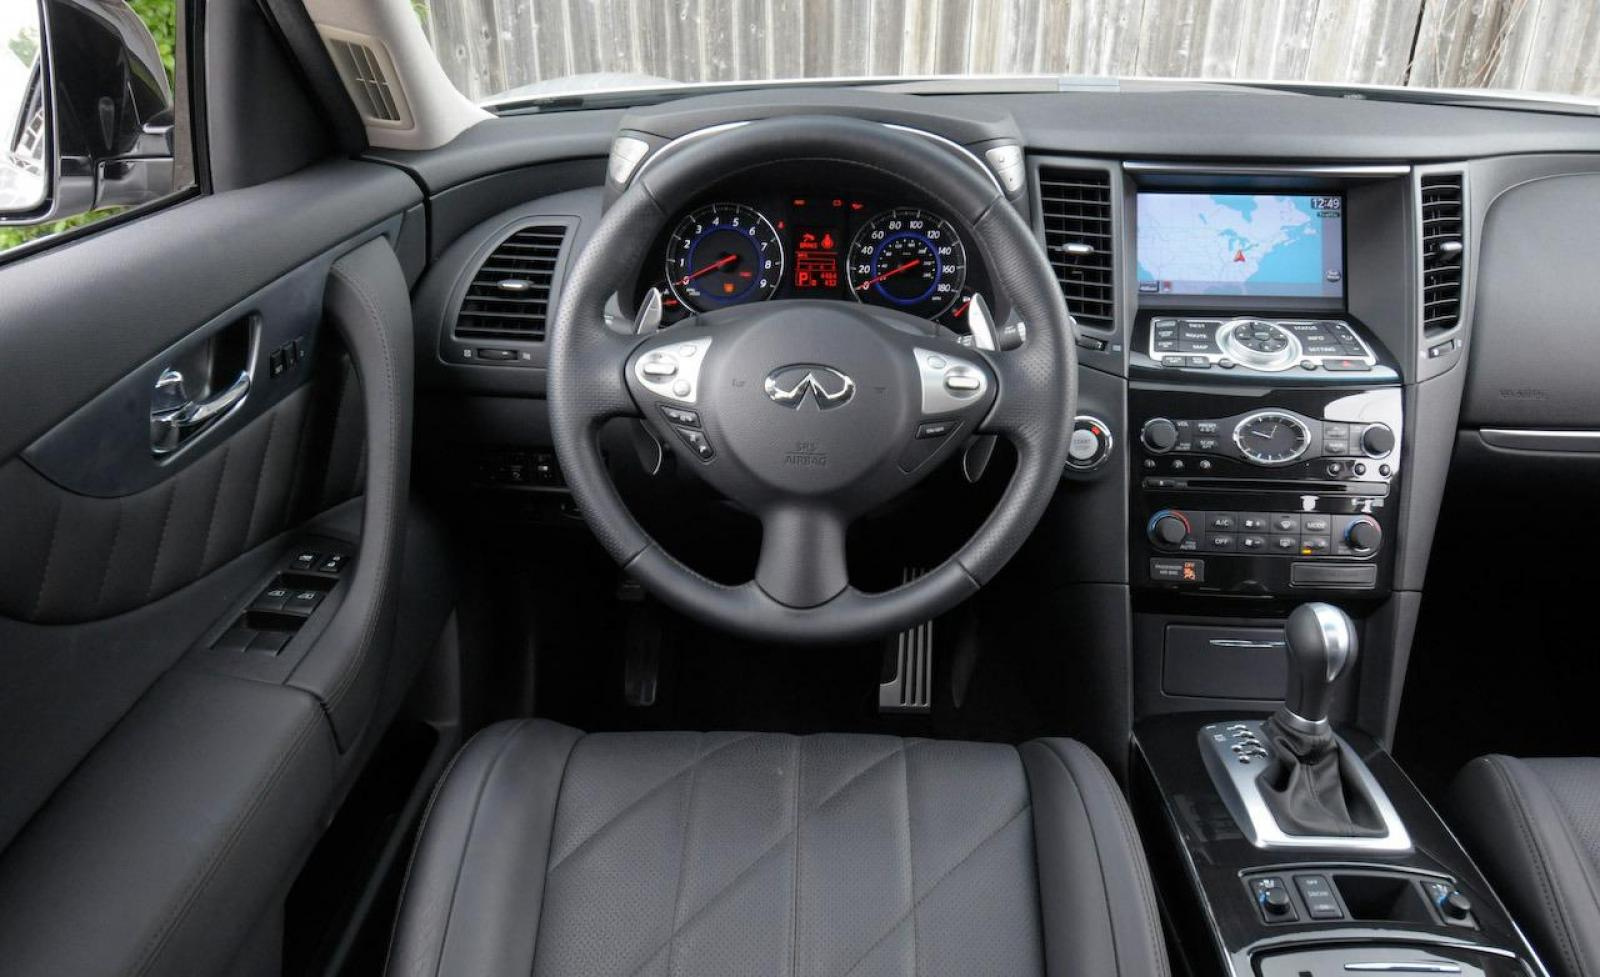 2013 infiniti fx interior gallery hd cars wallpaper 2006 infiniti fx35 car for 28 000 ghs on carxus vanachro Choice Image